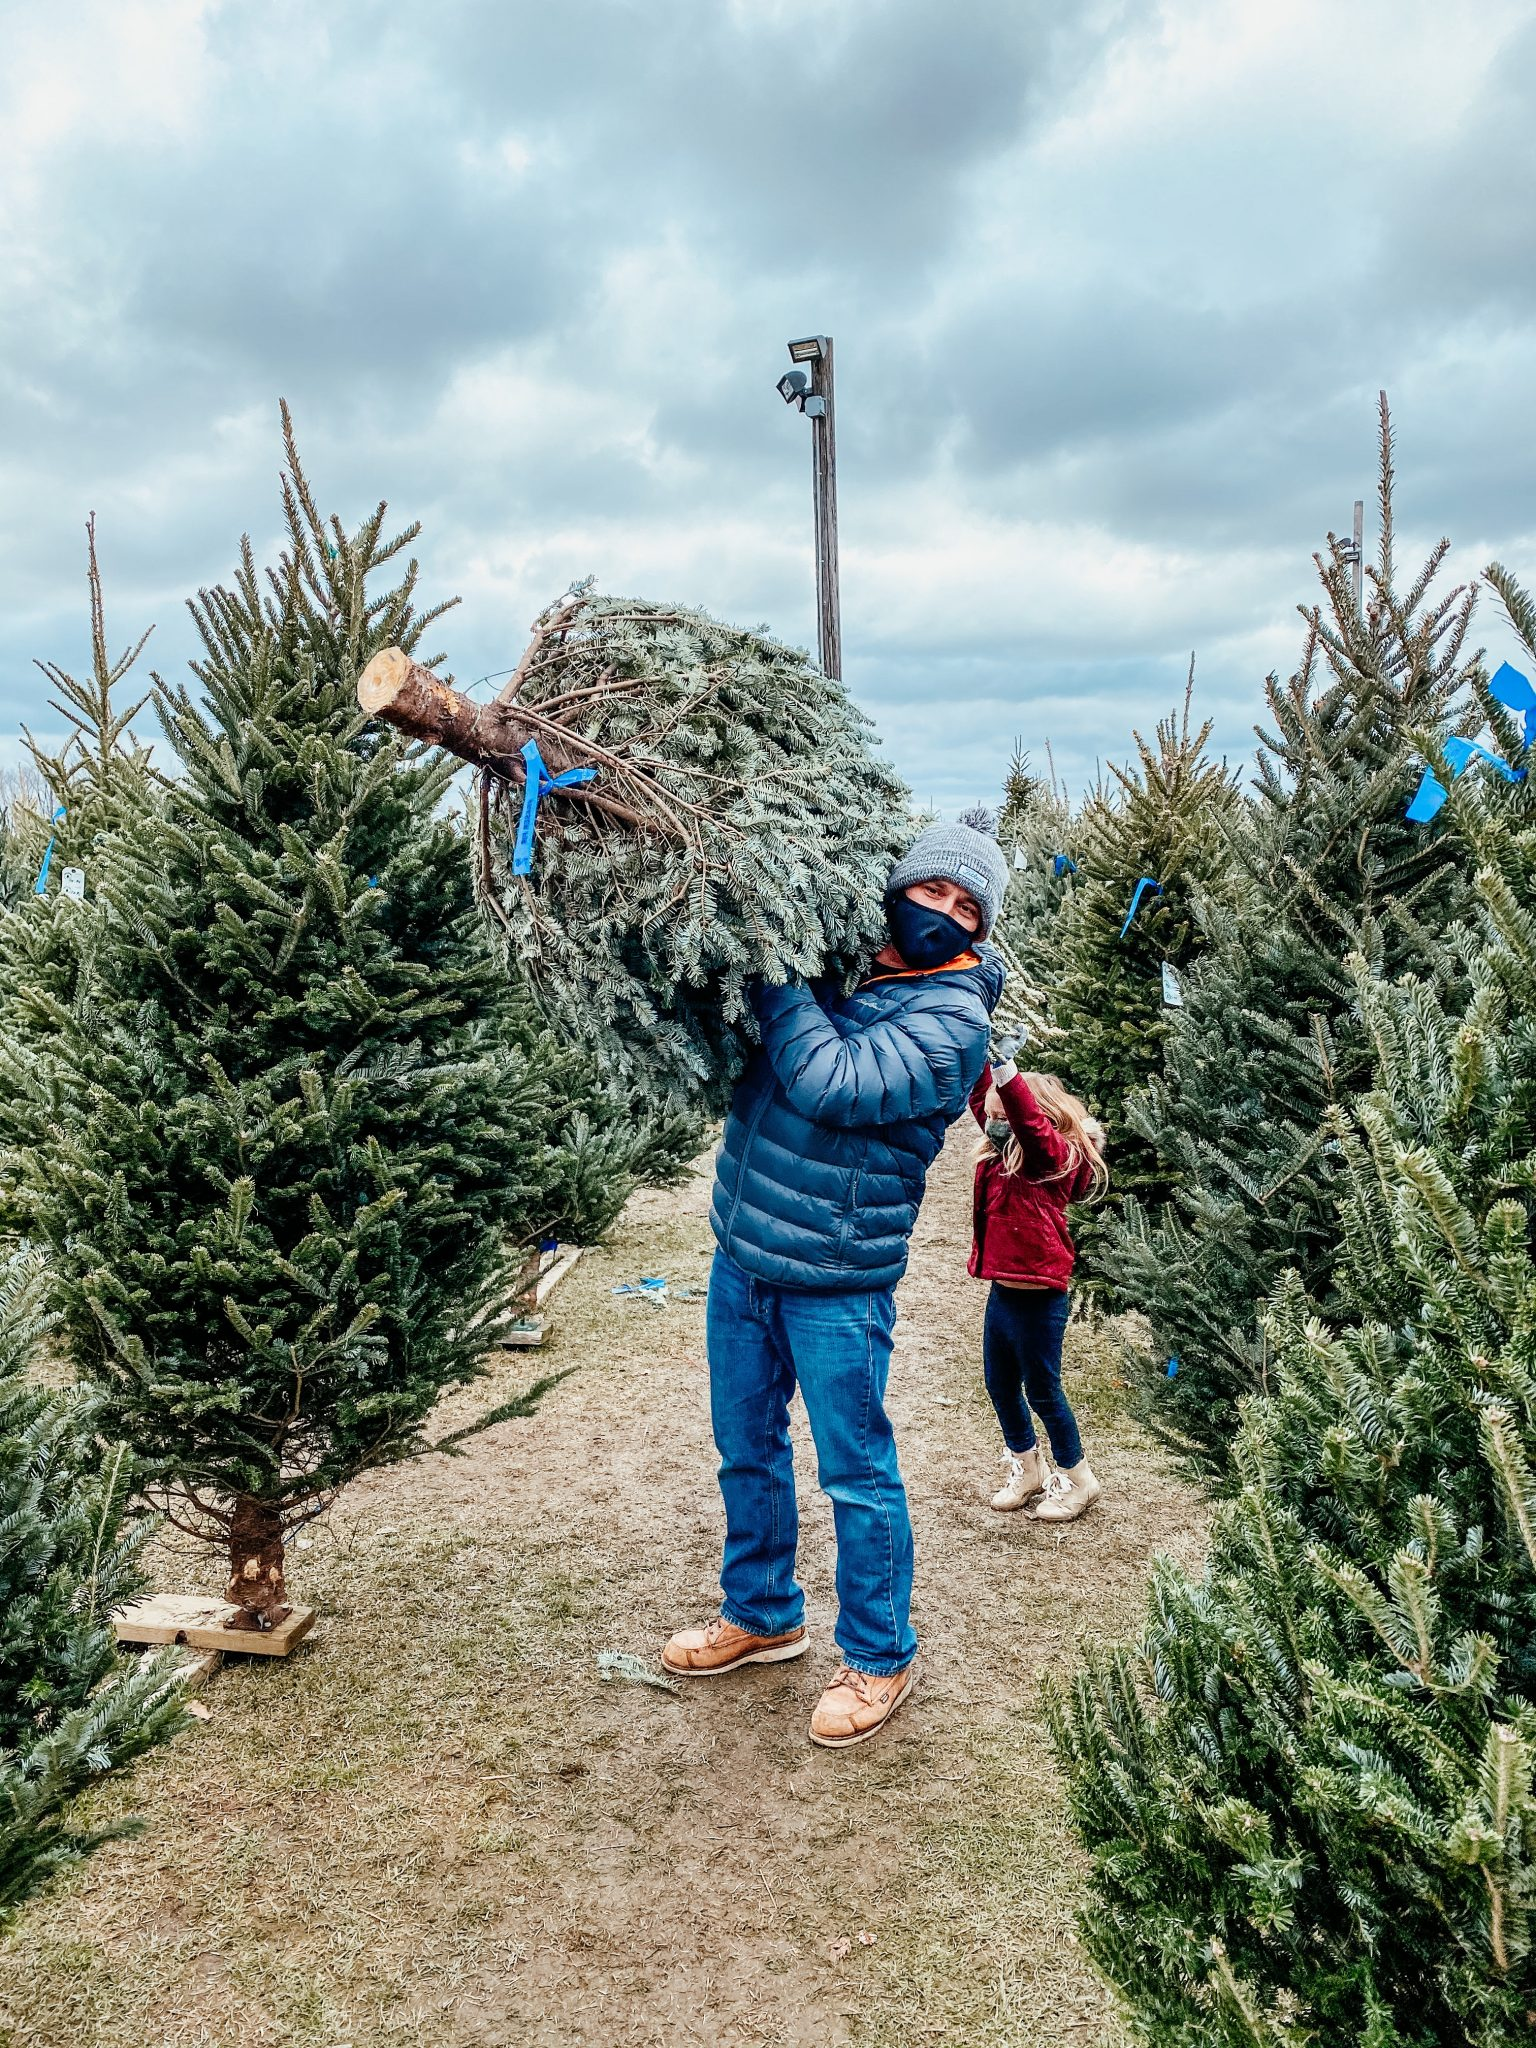 Winter outings with the family | Daily Splendor Life and Style Blog | Christmas Tree #familychristmas #holidayfestivities #familyadventures #Christmastree